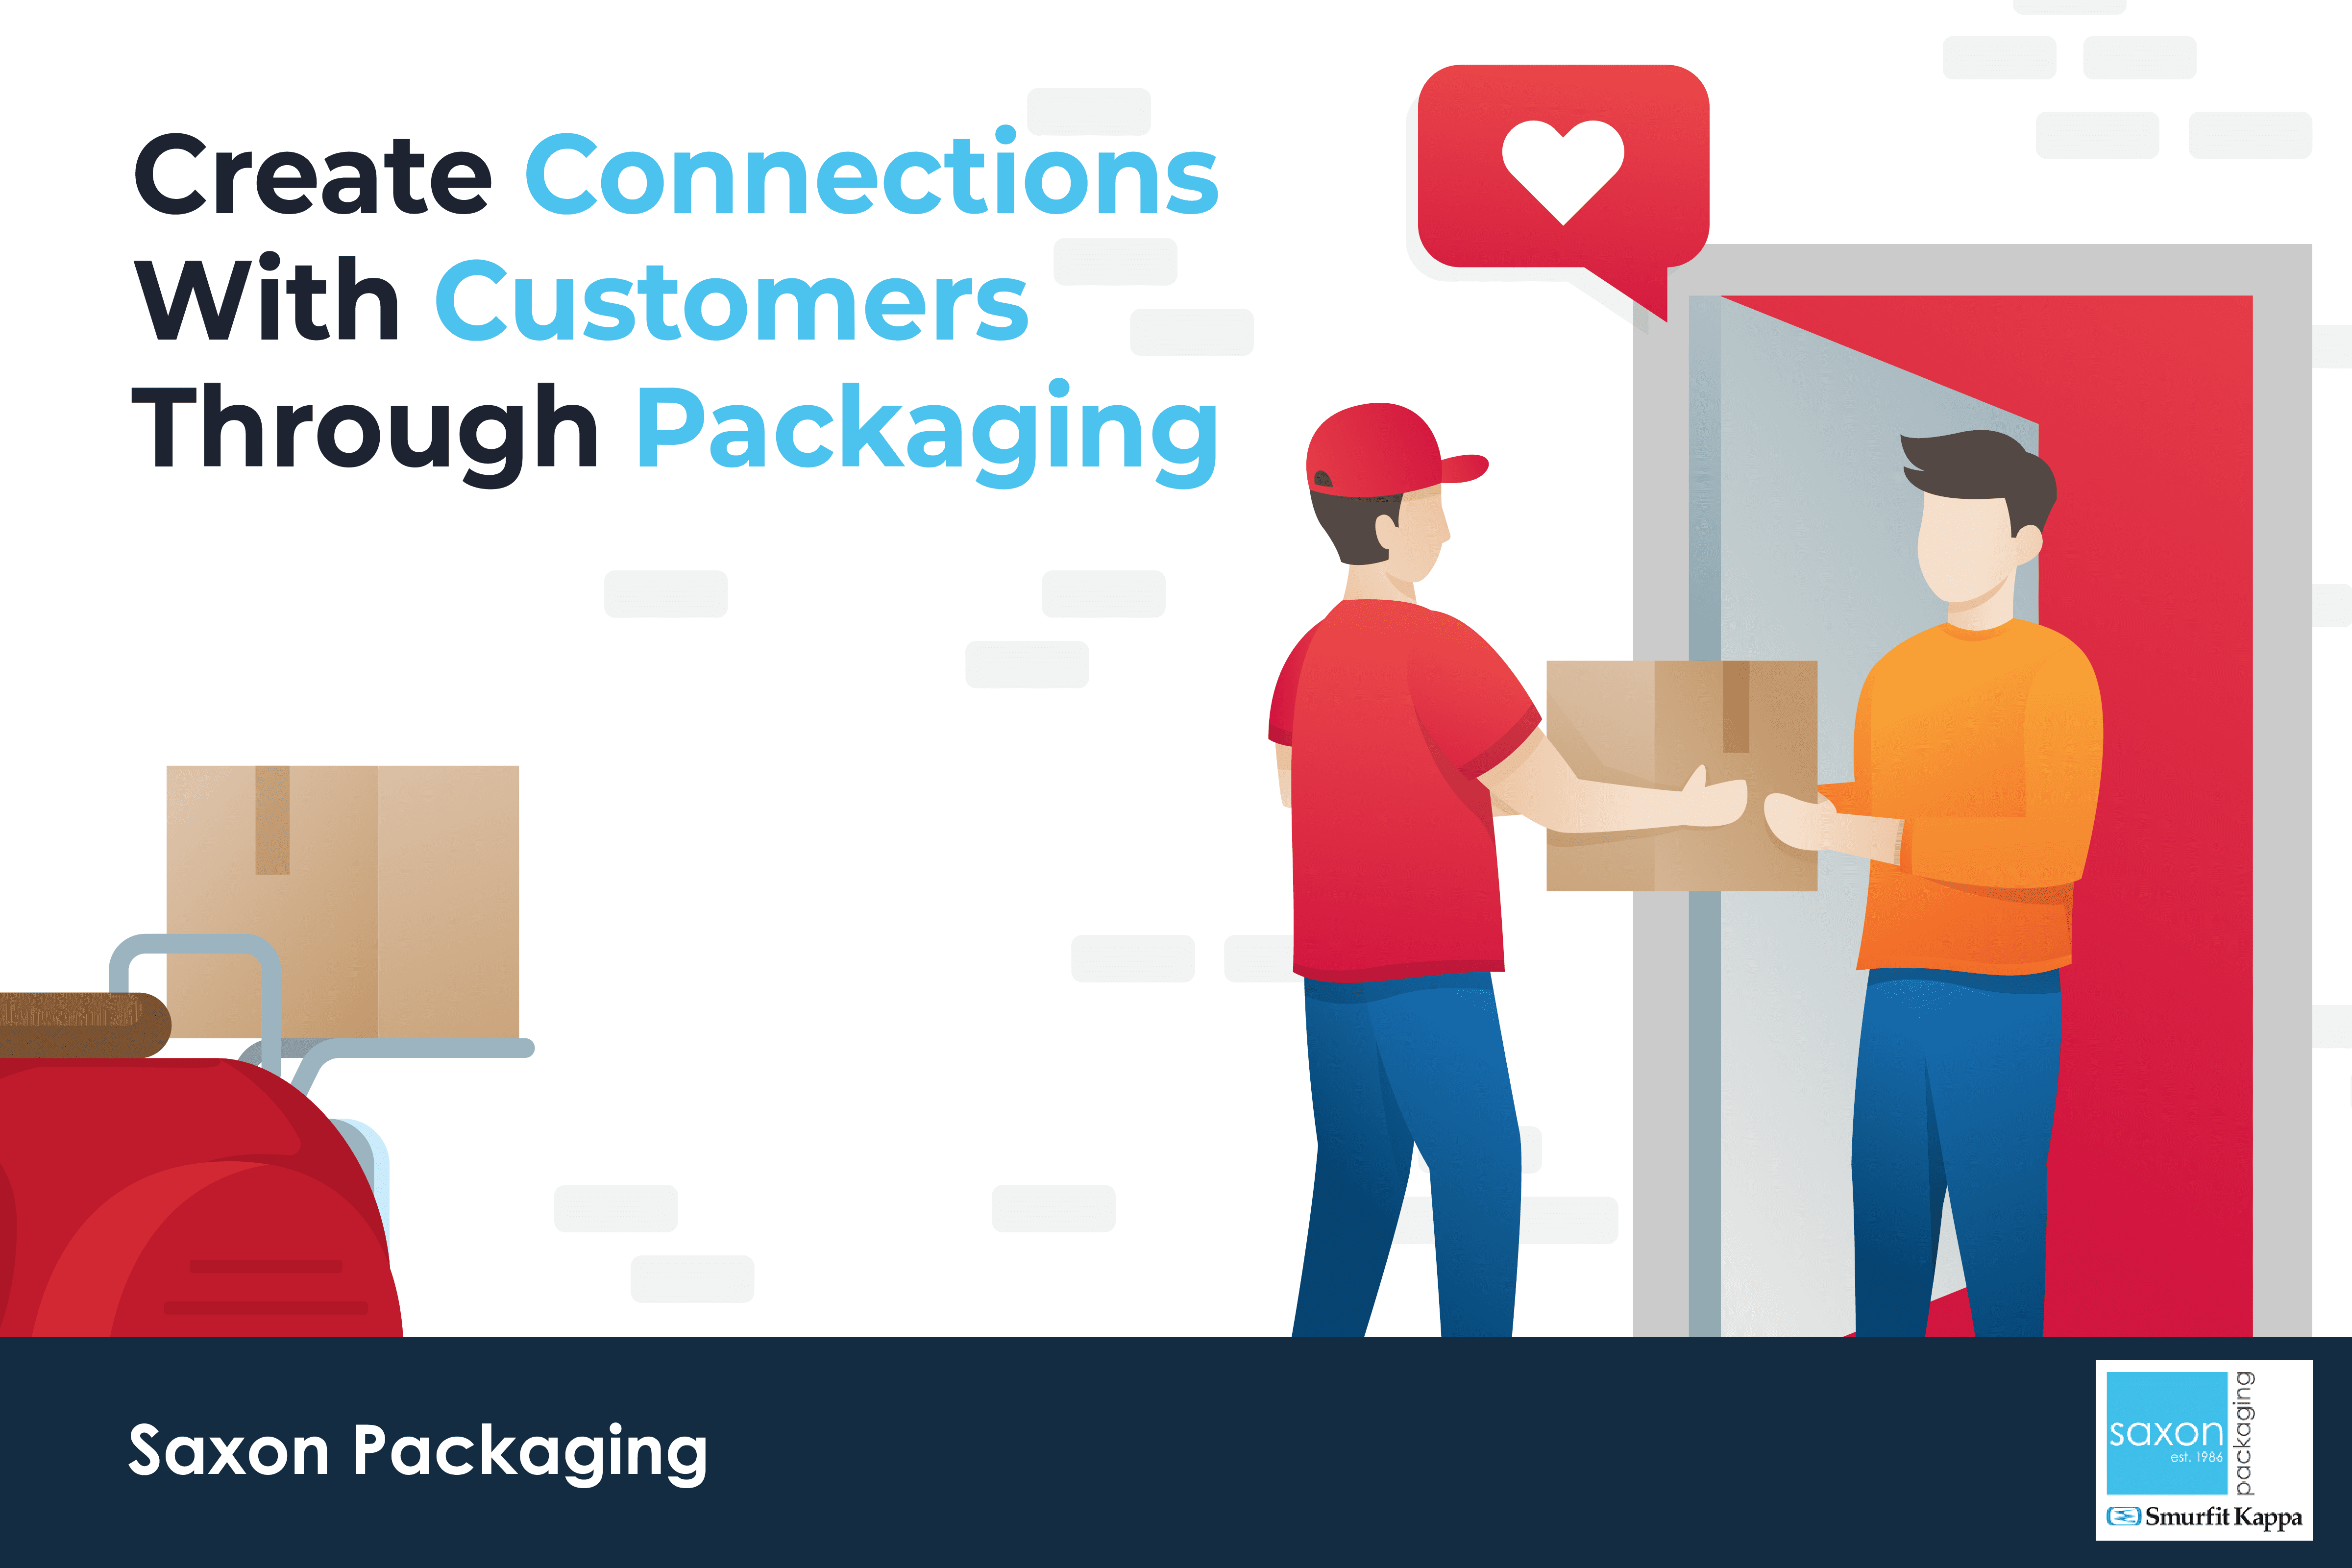 Create Connections With Customers Through Packaging   Saxon Packaging   UK Packaging Manufacturer   Corrugated Boxes   eCommerce Packaging   Packaging for Retail   Retail Packaging   Packaging Supplier   Advice for buying packaging